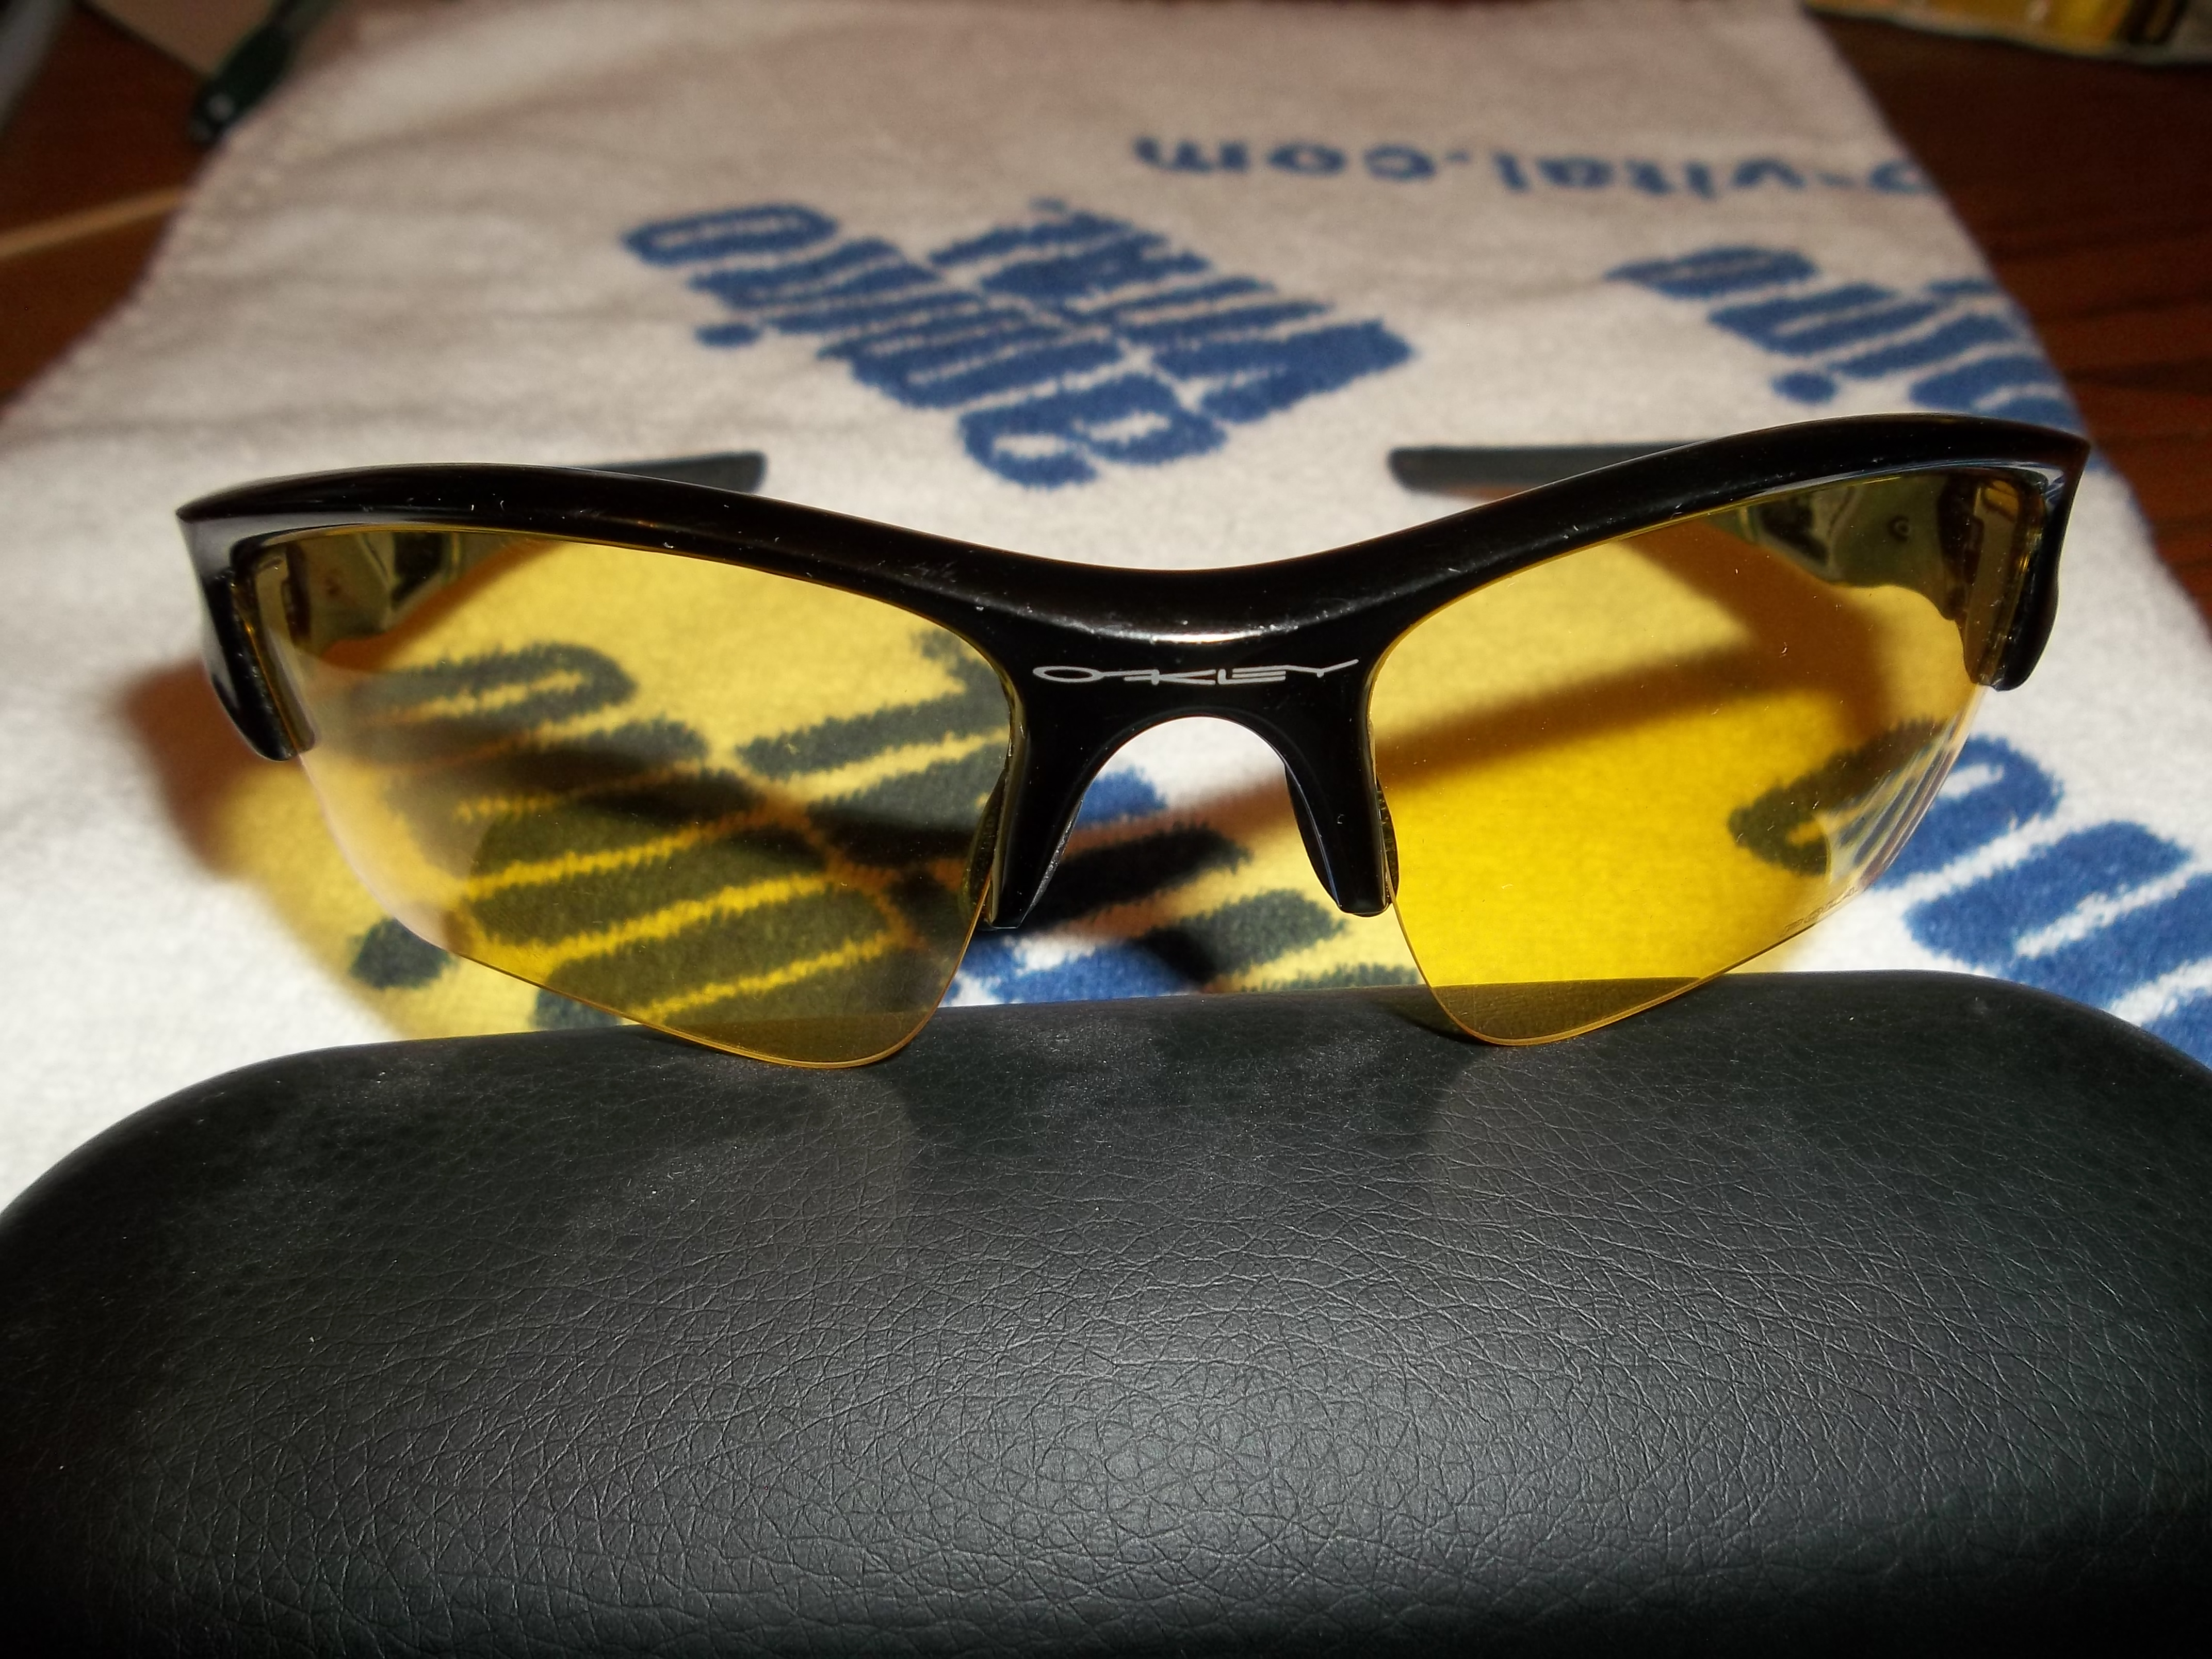 discounted oakley glasses 2vhf  For sale is a very good condition pair of Oakley Flak Jacket XLJ glasses  with yellow lenses These are REAL Oakleys, model #26-241 can be found on  the